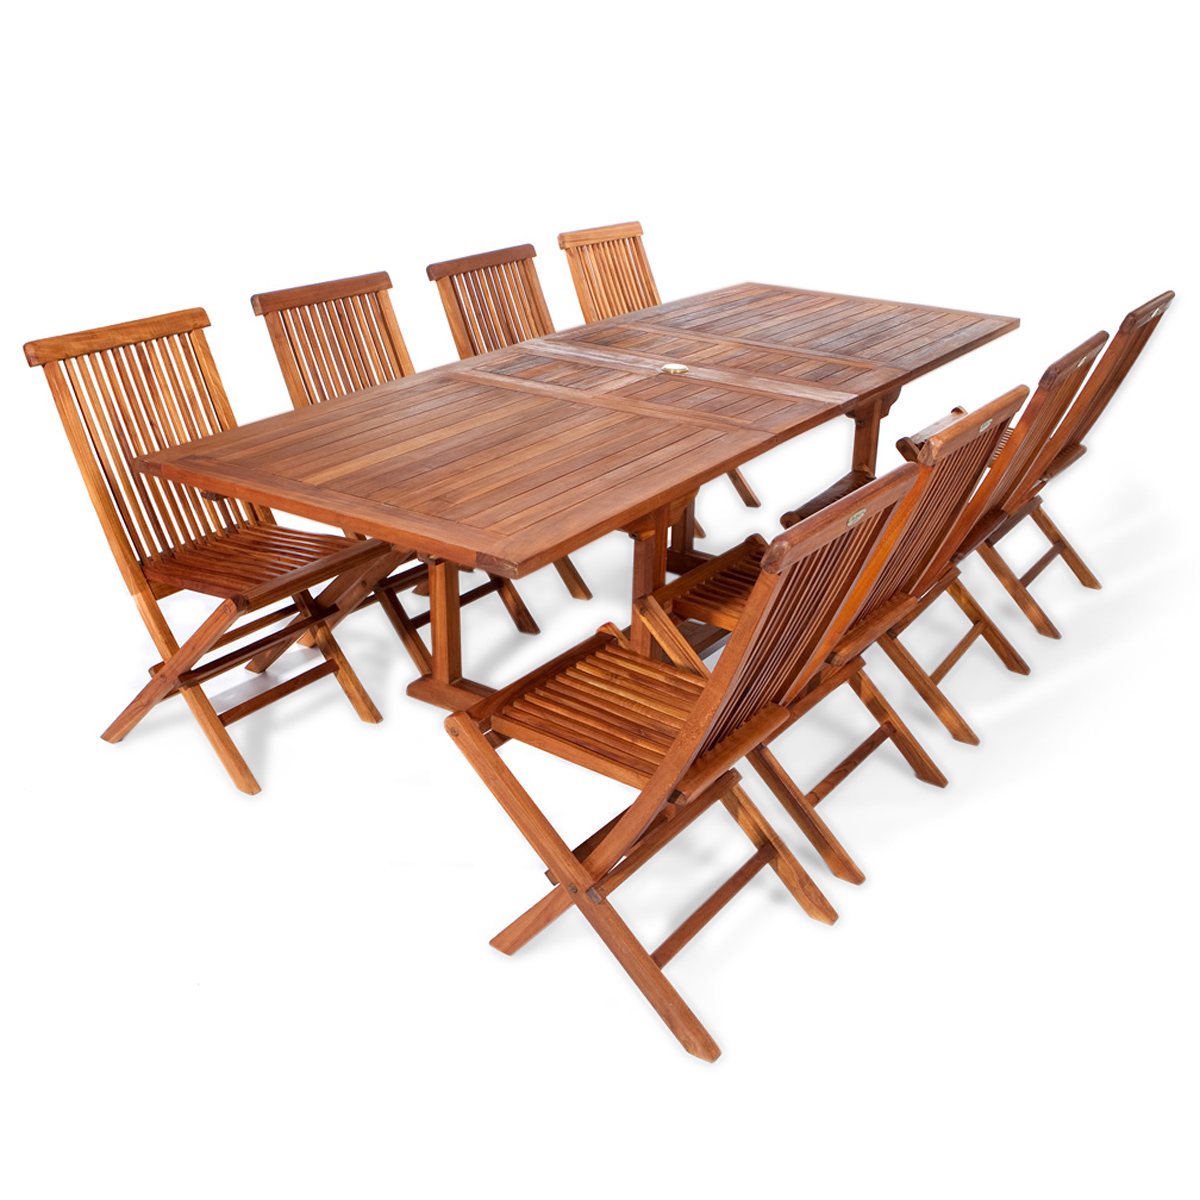 Picture of: Teak Furniture And Outdoor Teakwood Patio Canadian Furniture